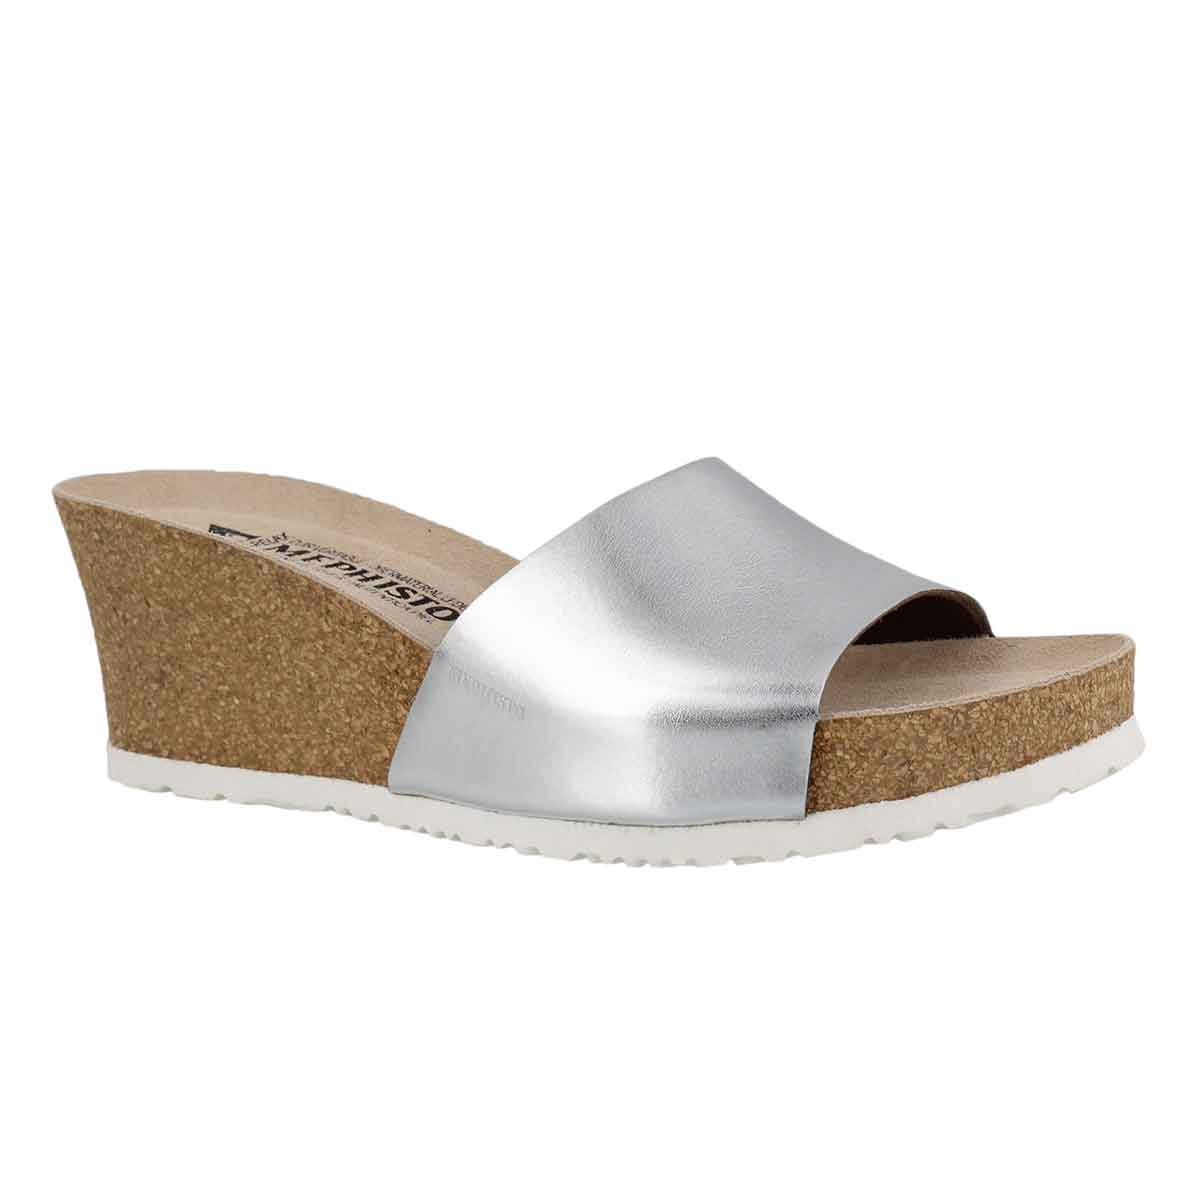 Women's LISE silver cork footbed wedge sandals